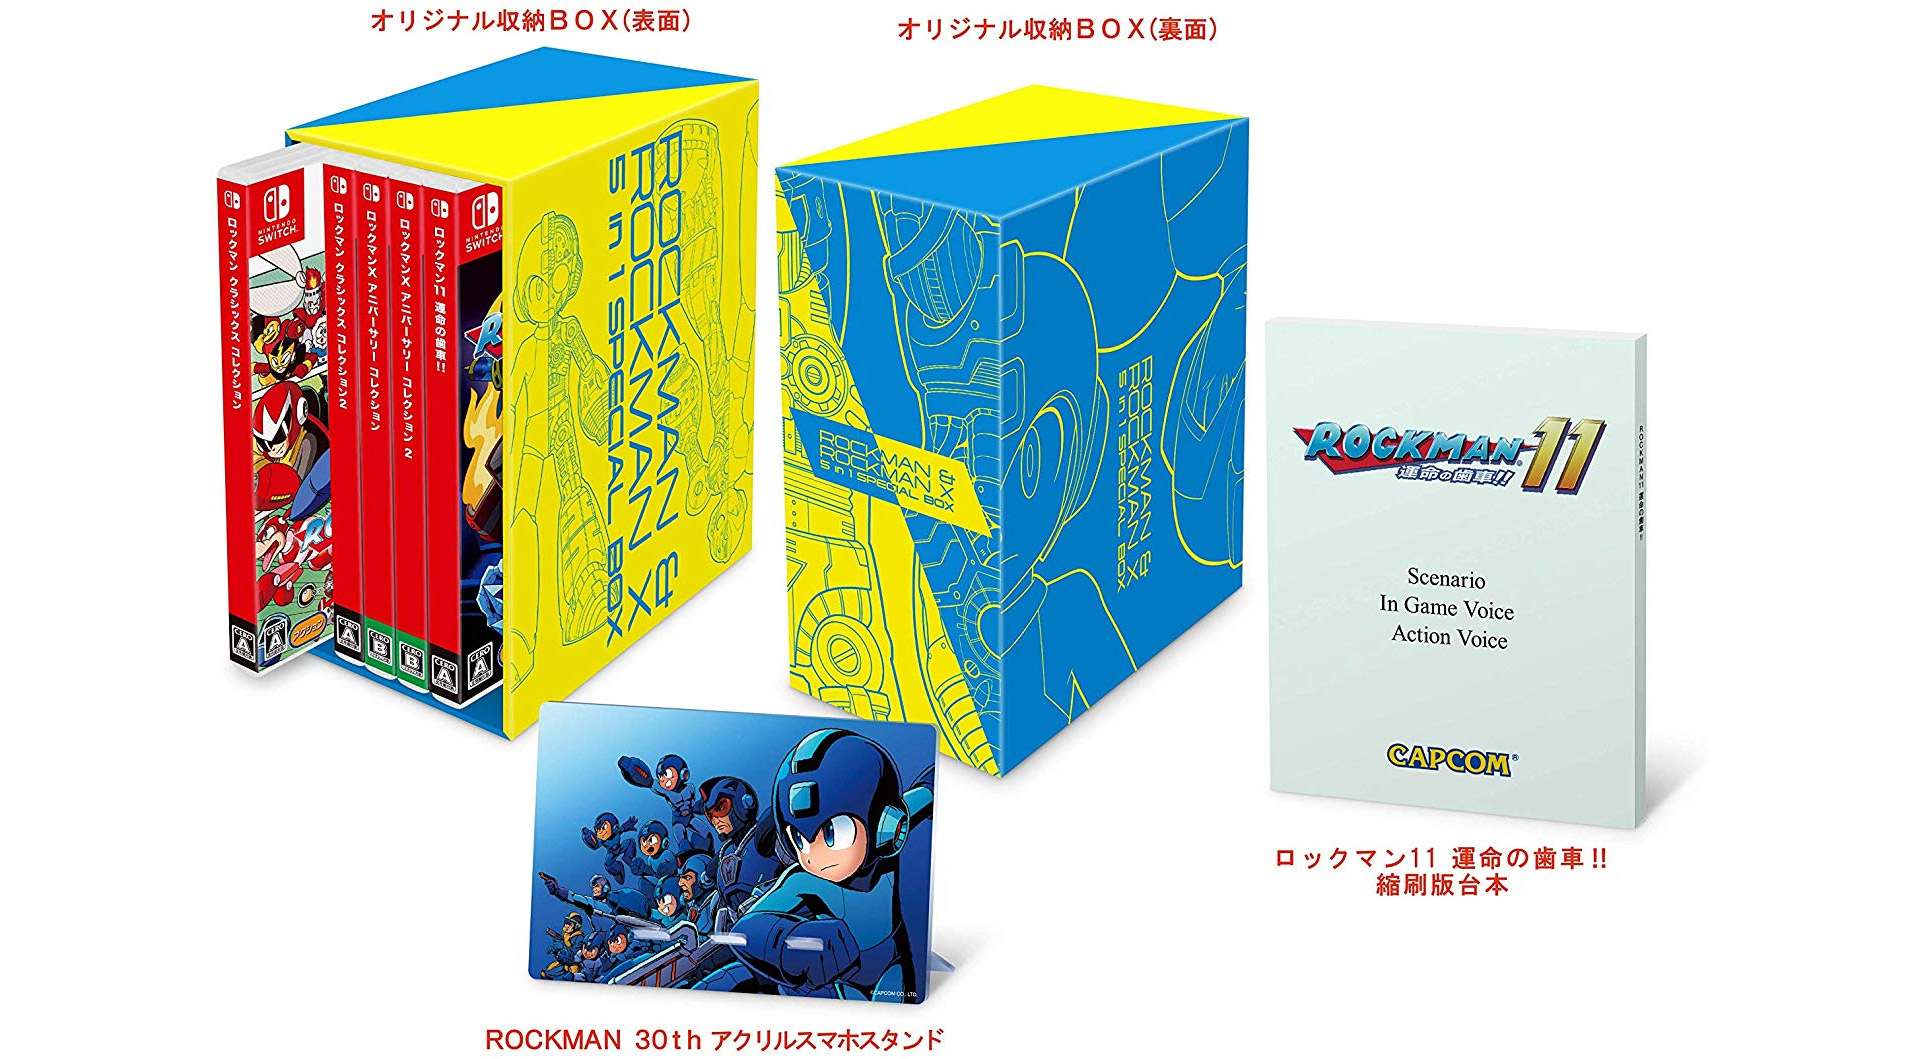 This box set is the only Mega Man collection you'll ever need on Switch screenshot